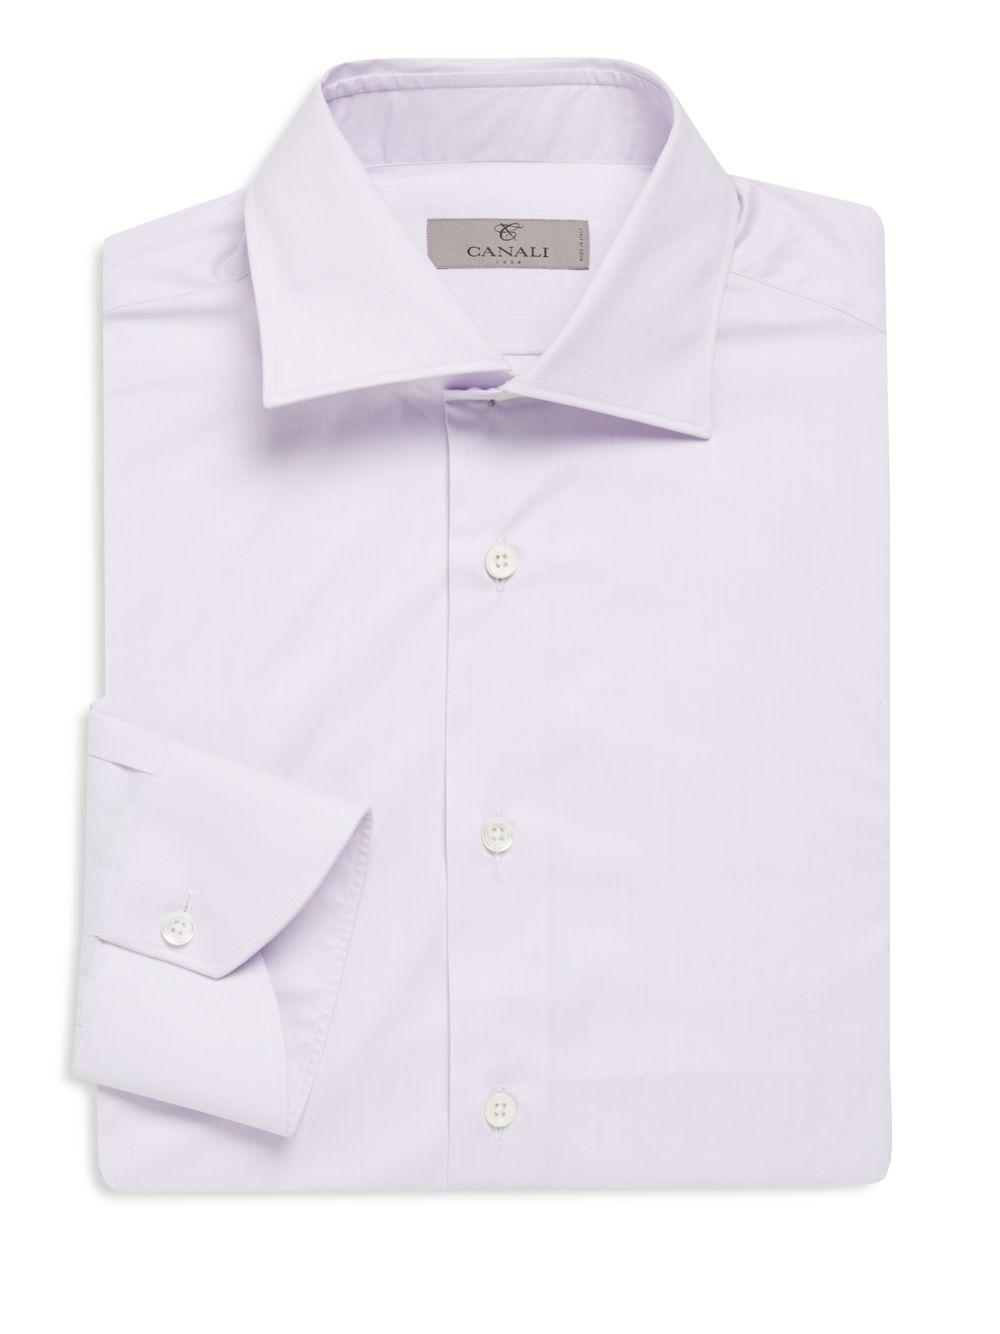 Armani modern fit solid cotton dress shirt in purple for for Modern fit dress shirt